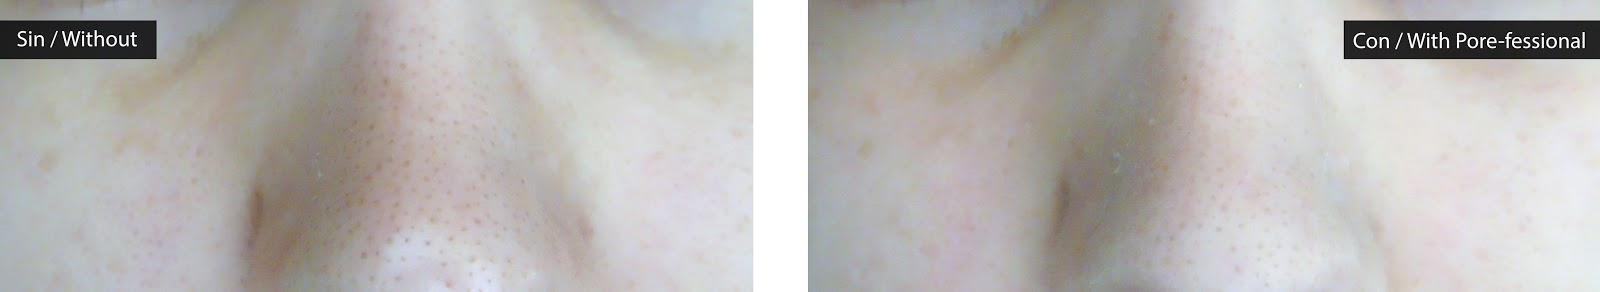 Review porefessional before and after on big pores, reseña antes y después poros grandes